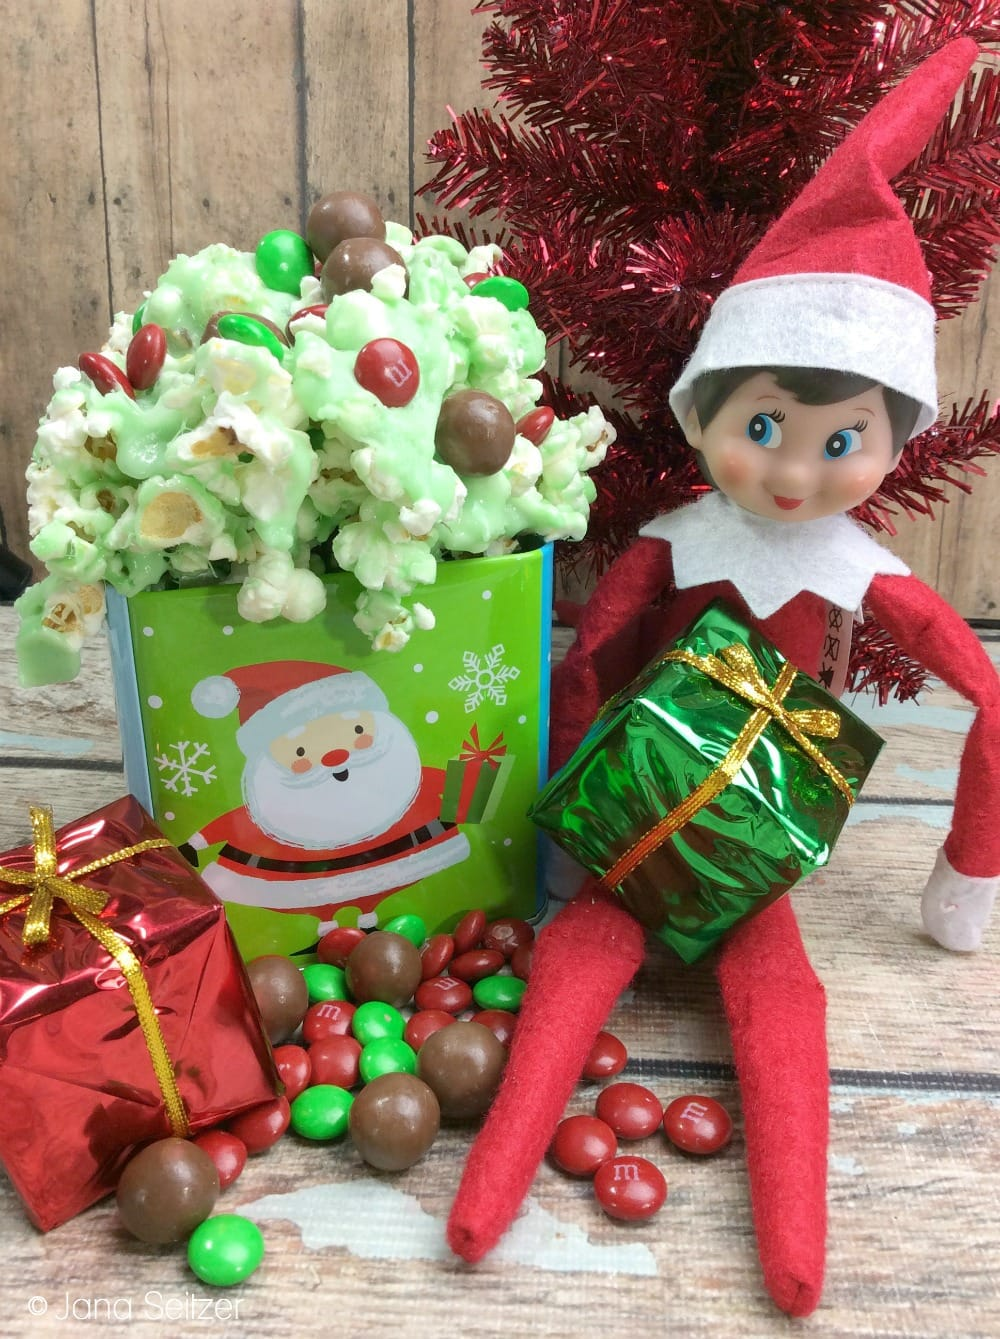 Elf Munch - Elf on the Shelf Munch